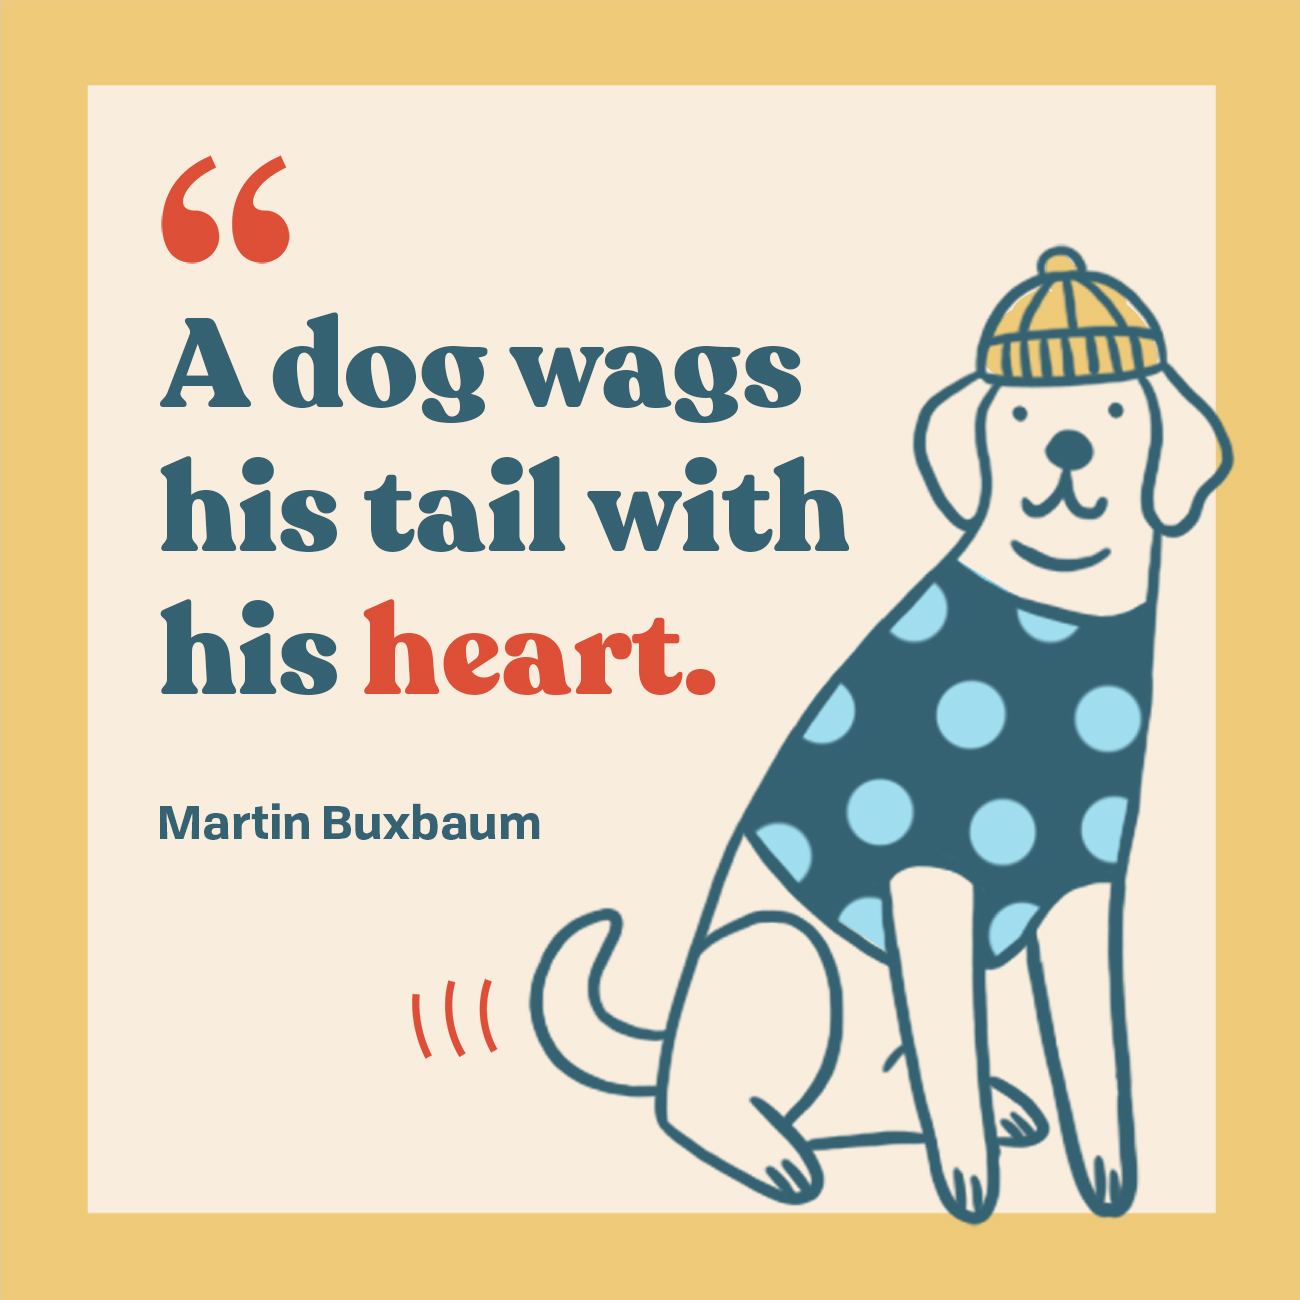 A dog wags his tail with his heart.